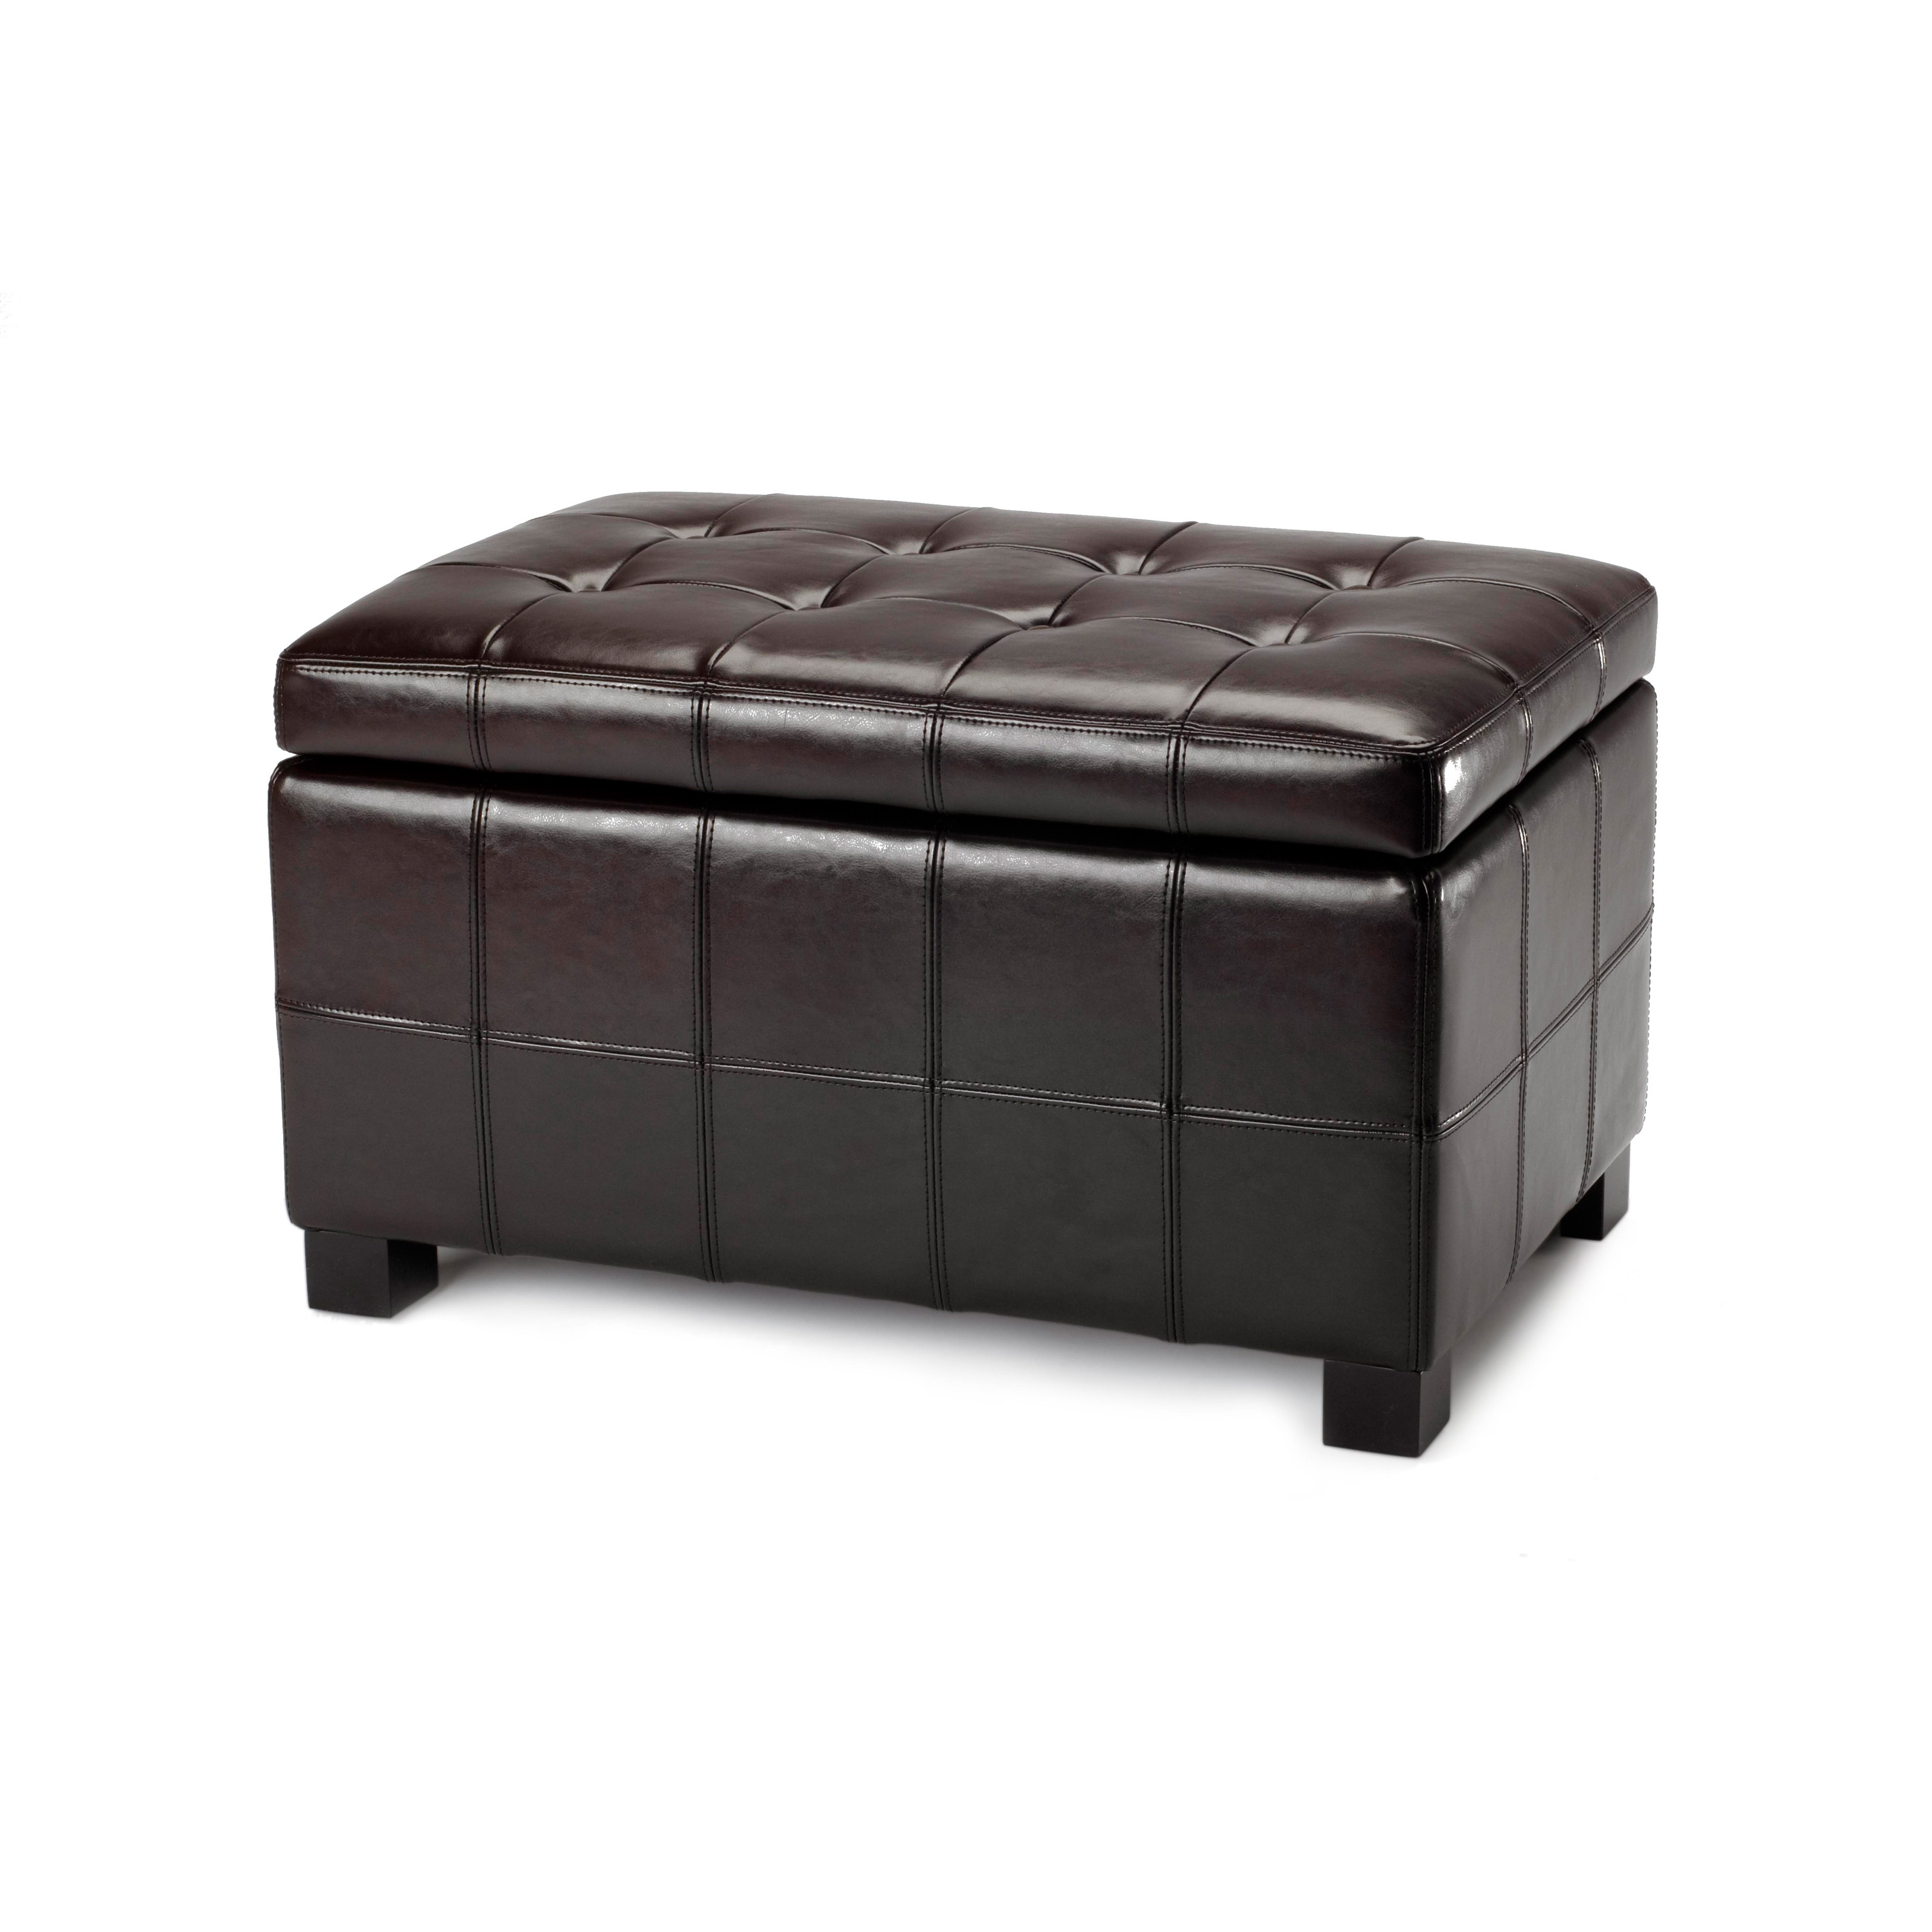 Safavieh Small Brown Maiden Tufted Brown Leather Storage